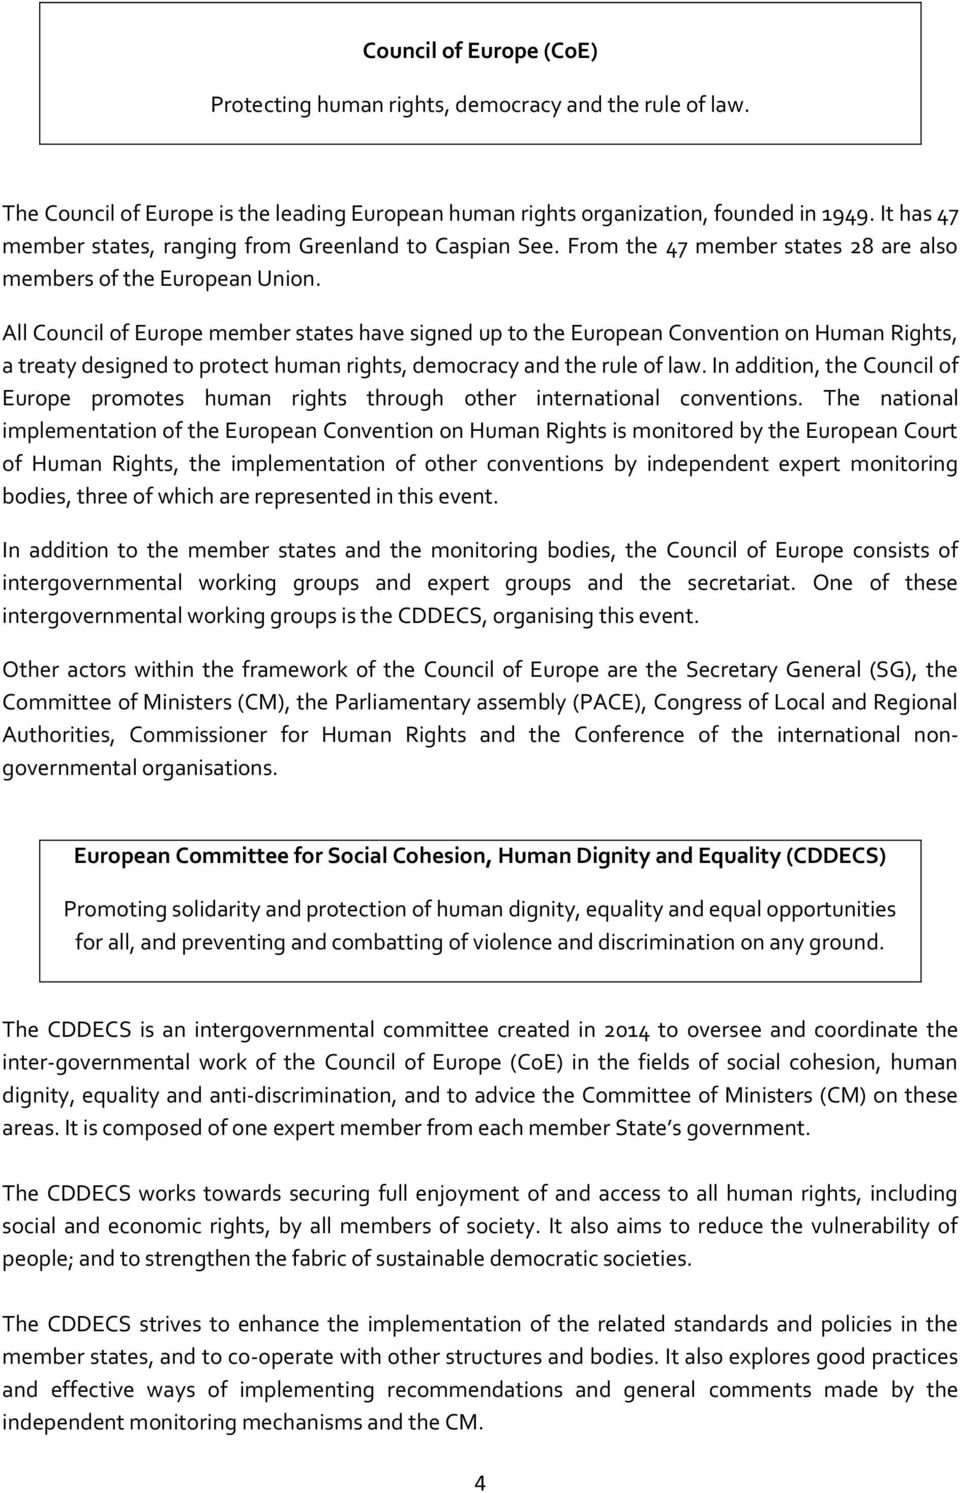 All Council of Europe member states have signed up to the European Convention on Human Rights, a treaty designed to protect human rights, democracy and the rule of law.